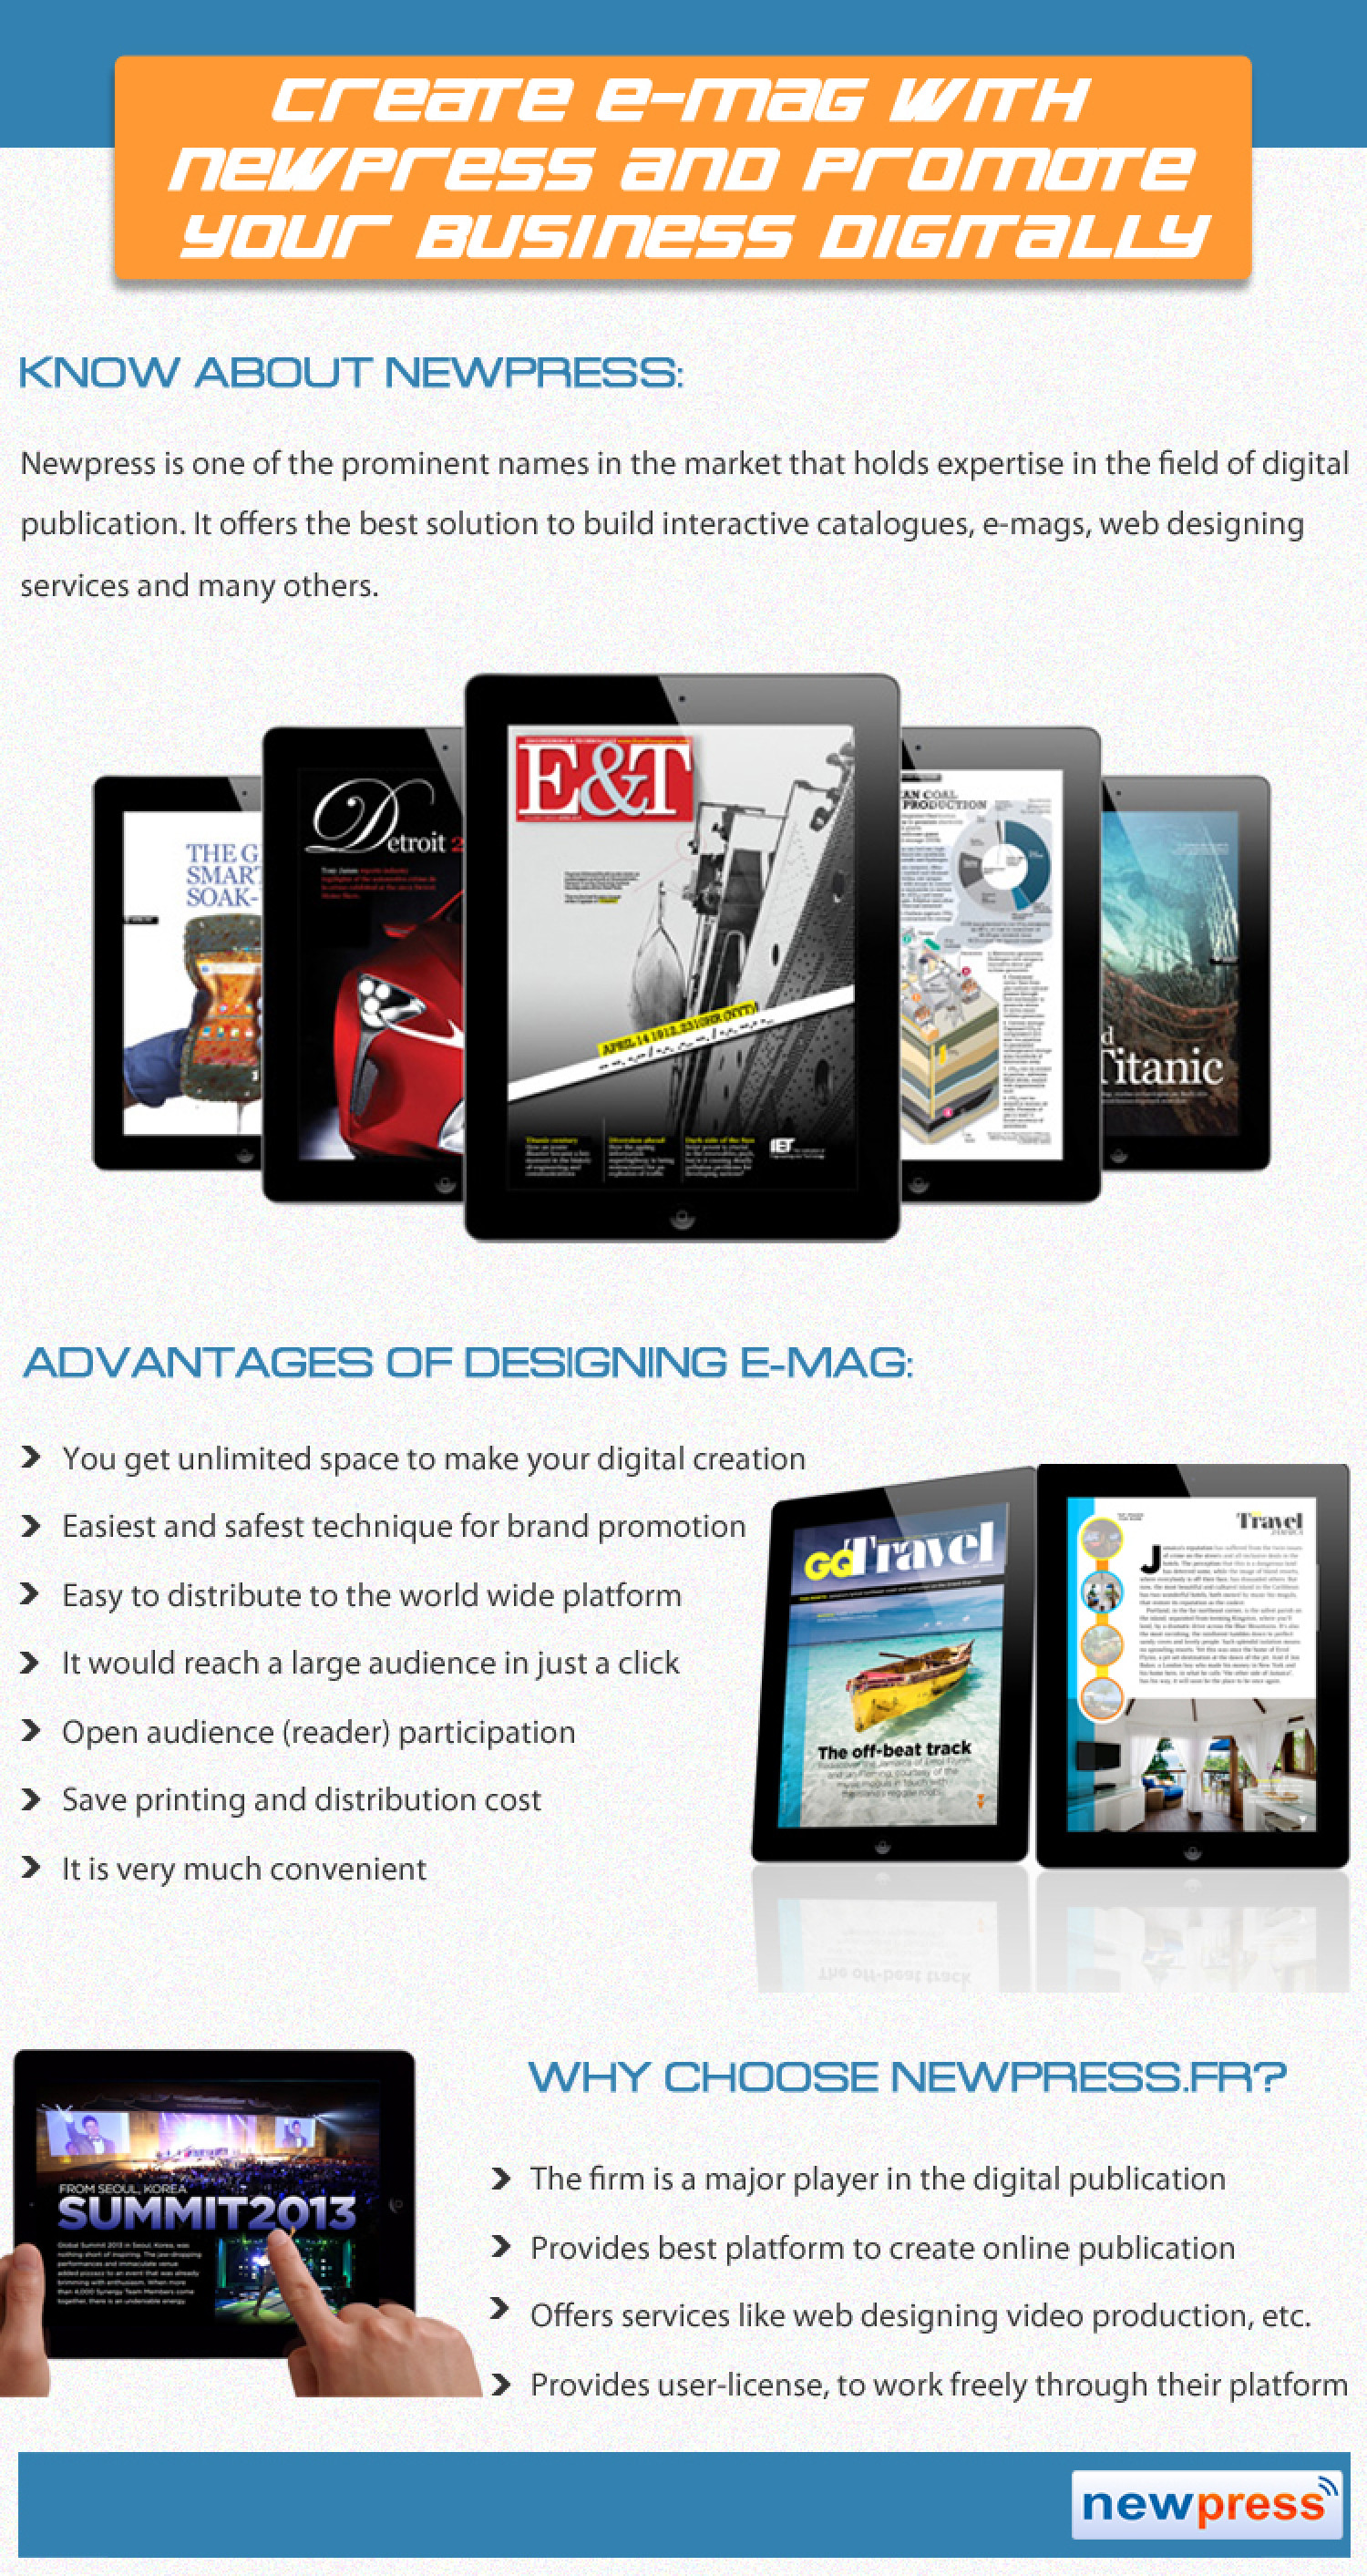 Create E-Mag with Newpress and Promote your Business Digitally Infographic